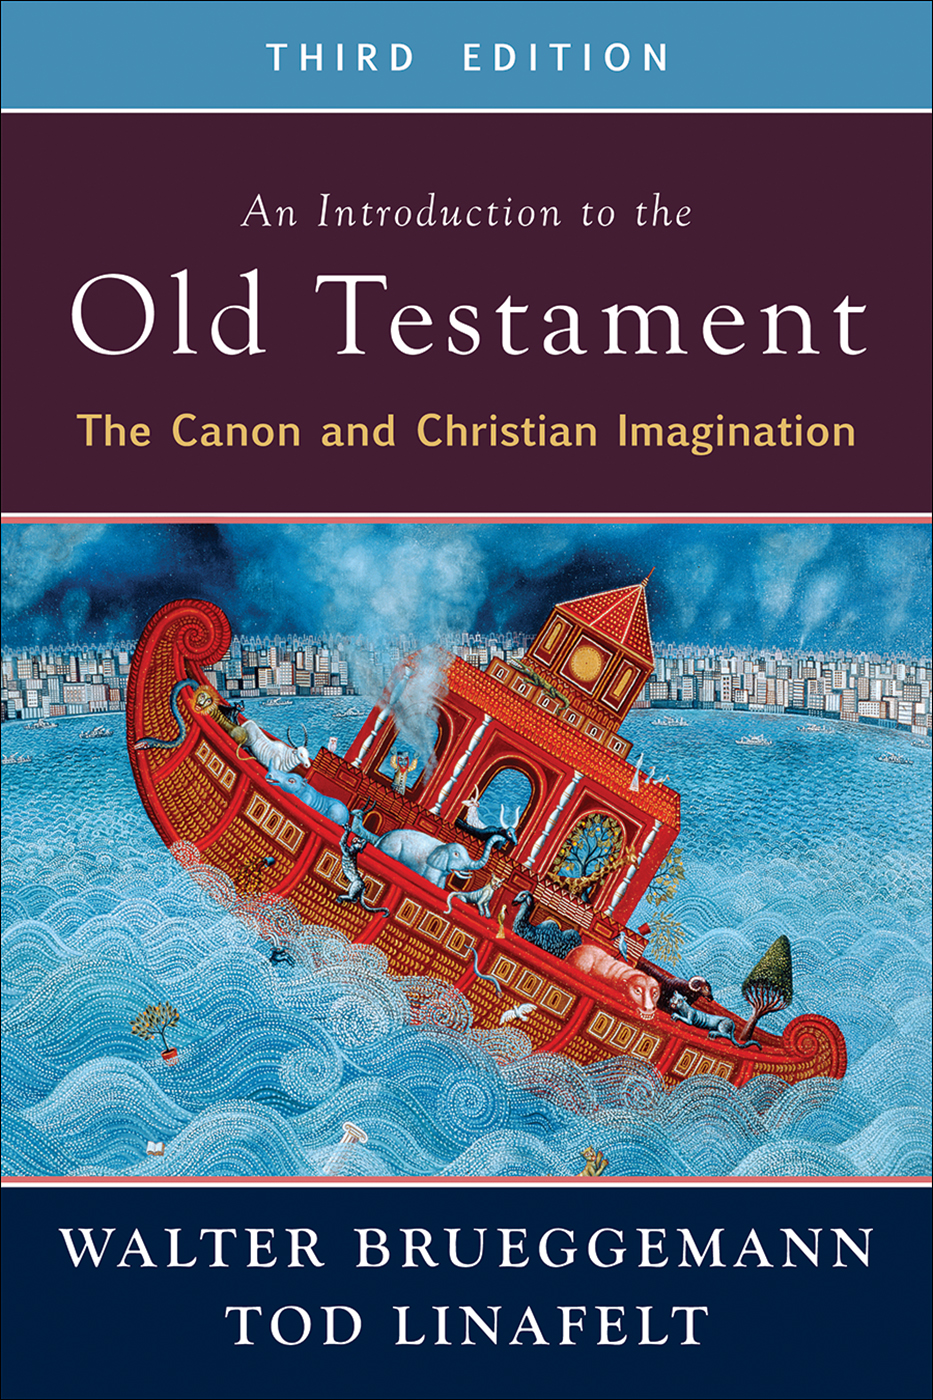 An Introduction to the Old Testament, Third Edition